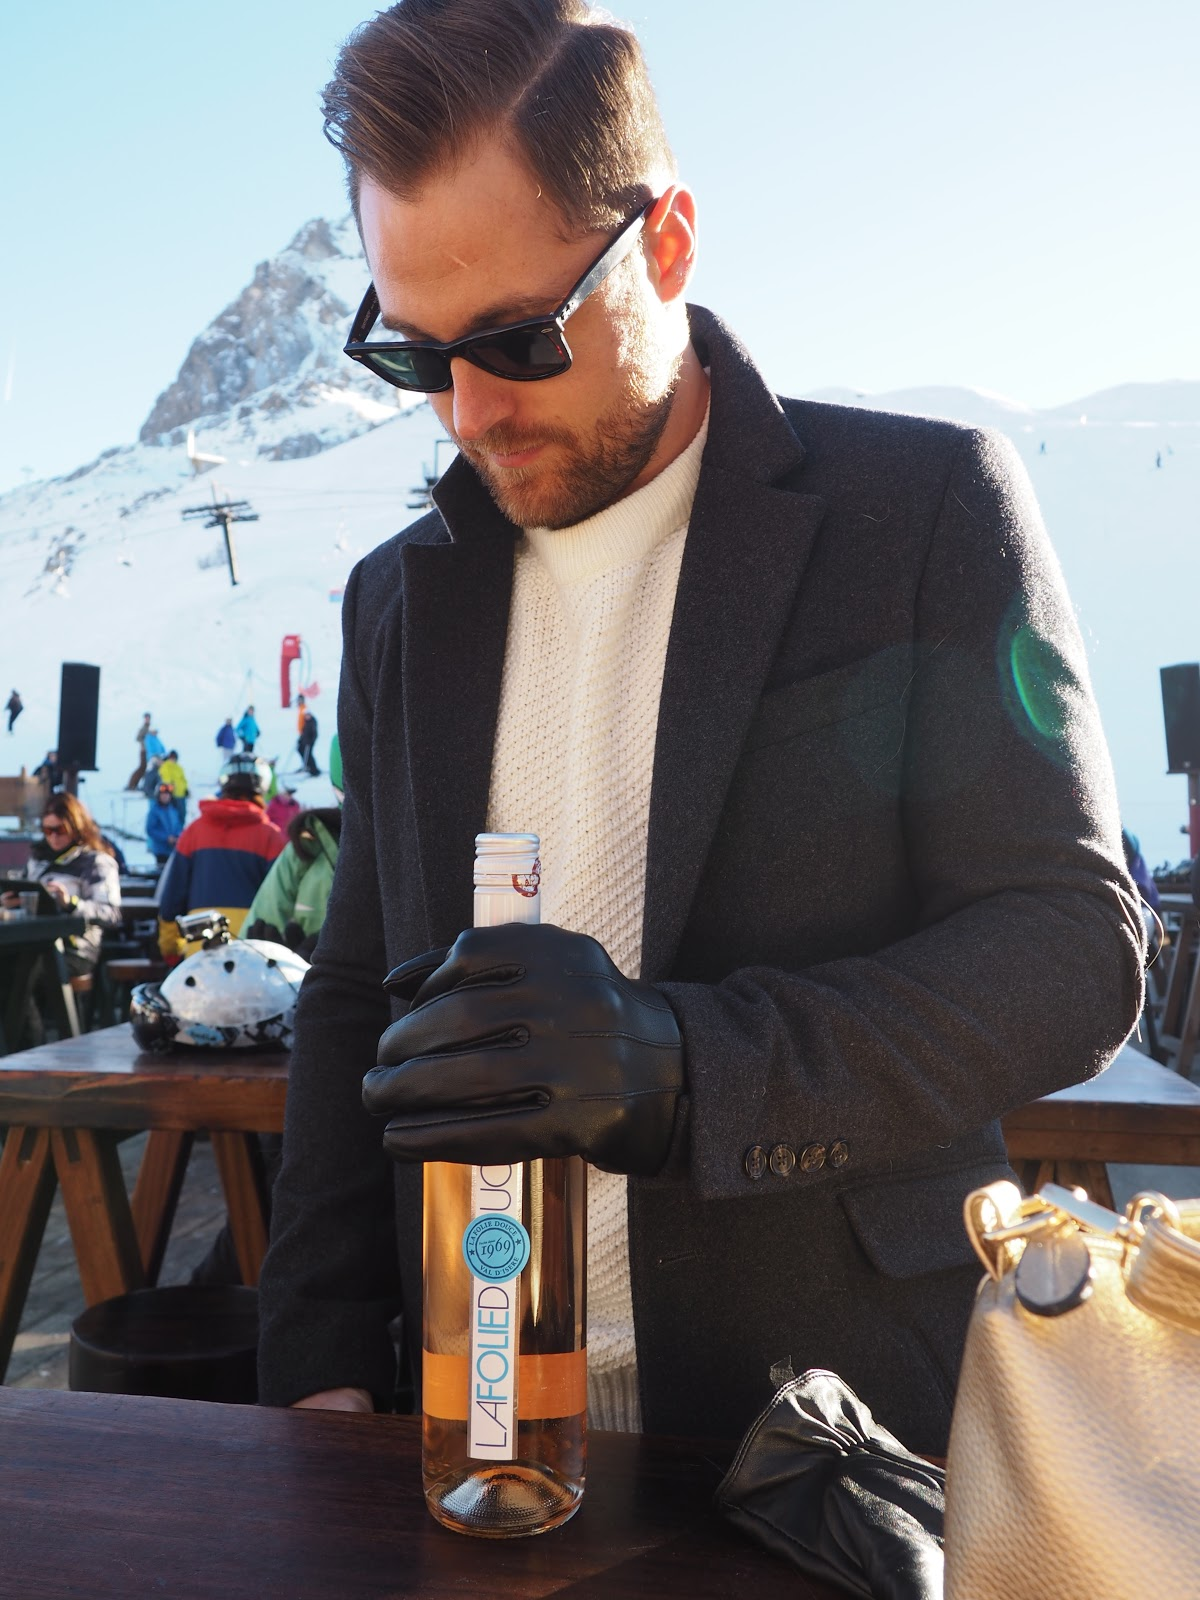 Ben Heath, Twenty First Century Gent at La Folie Douce, Val d'Isere, France